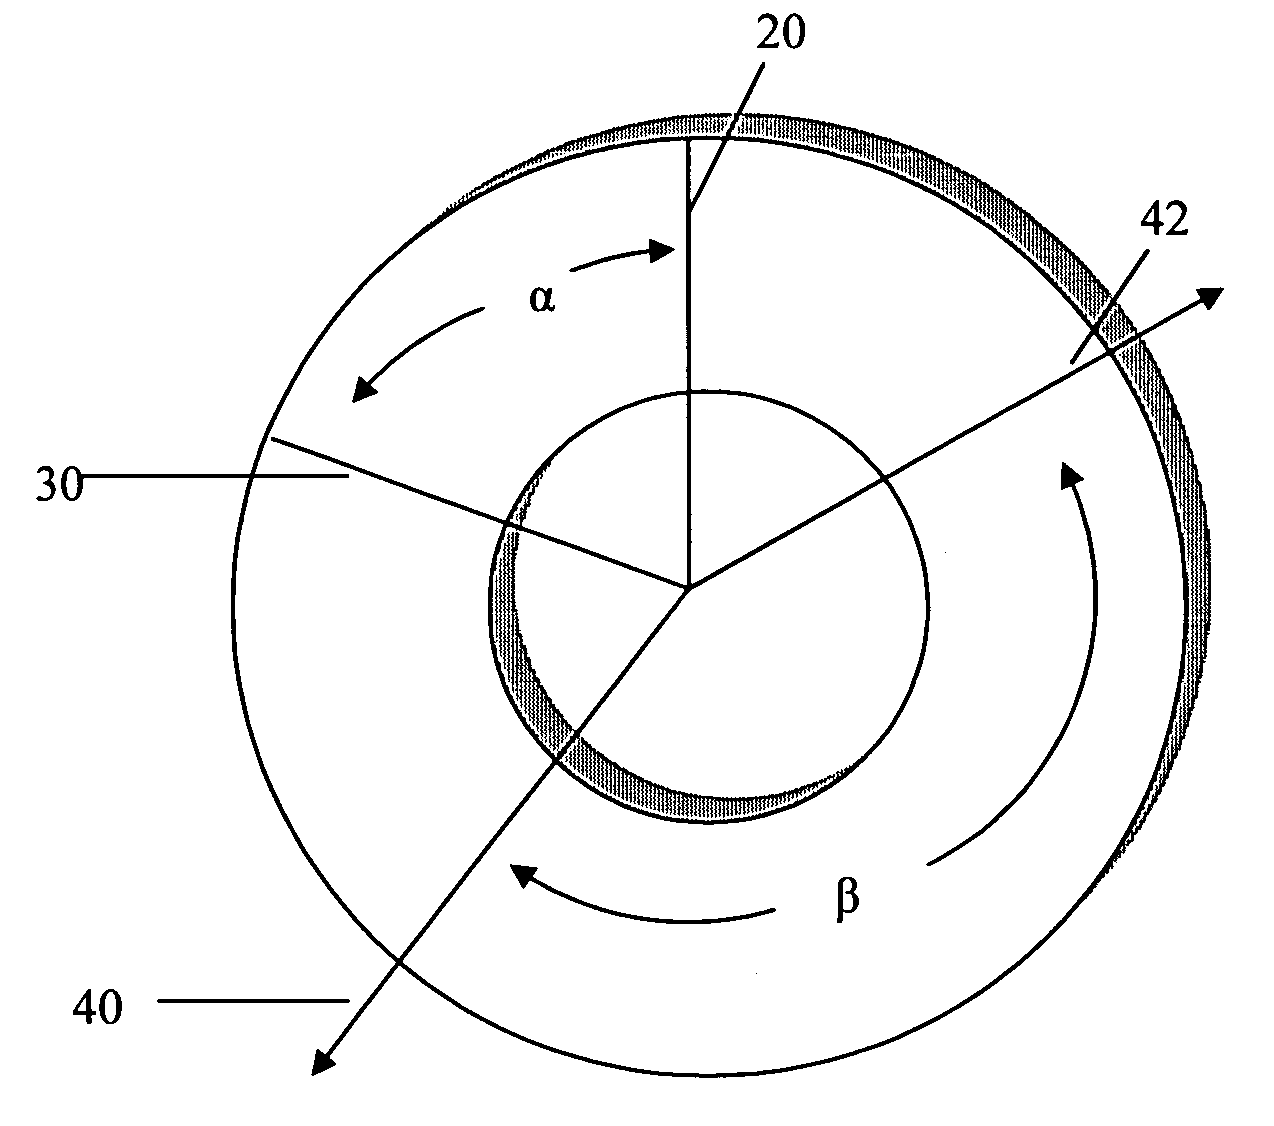 Patent US20060137802 - Green tire evolution for high speed uniformity - Google Patents